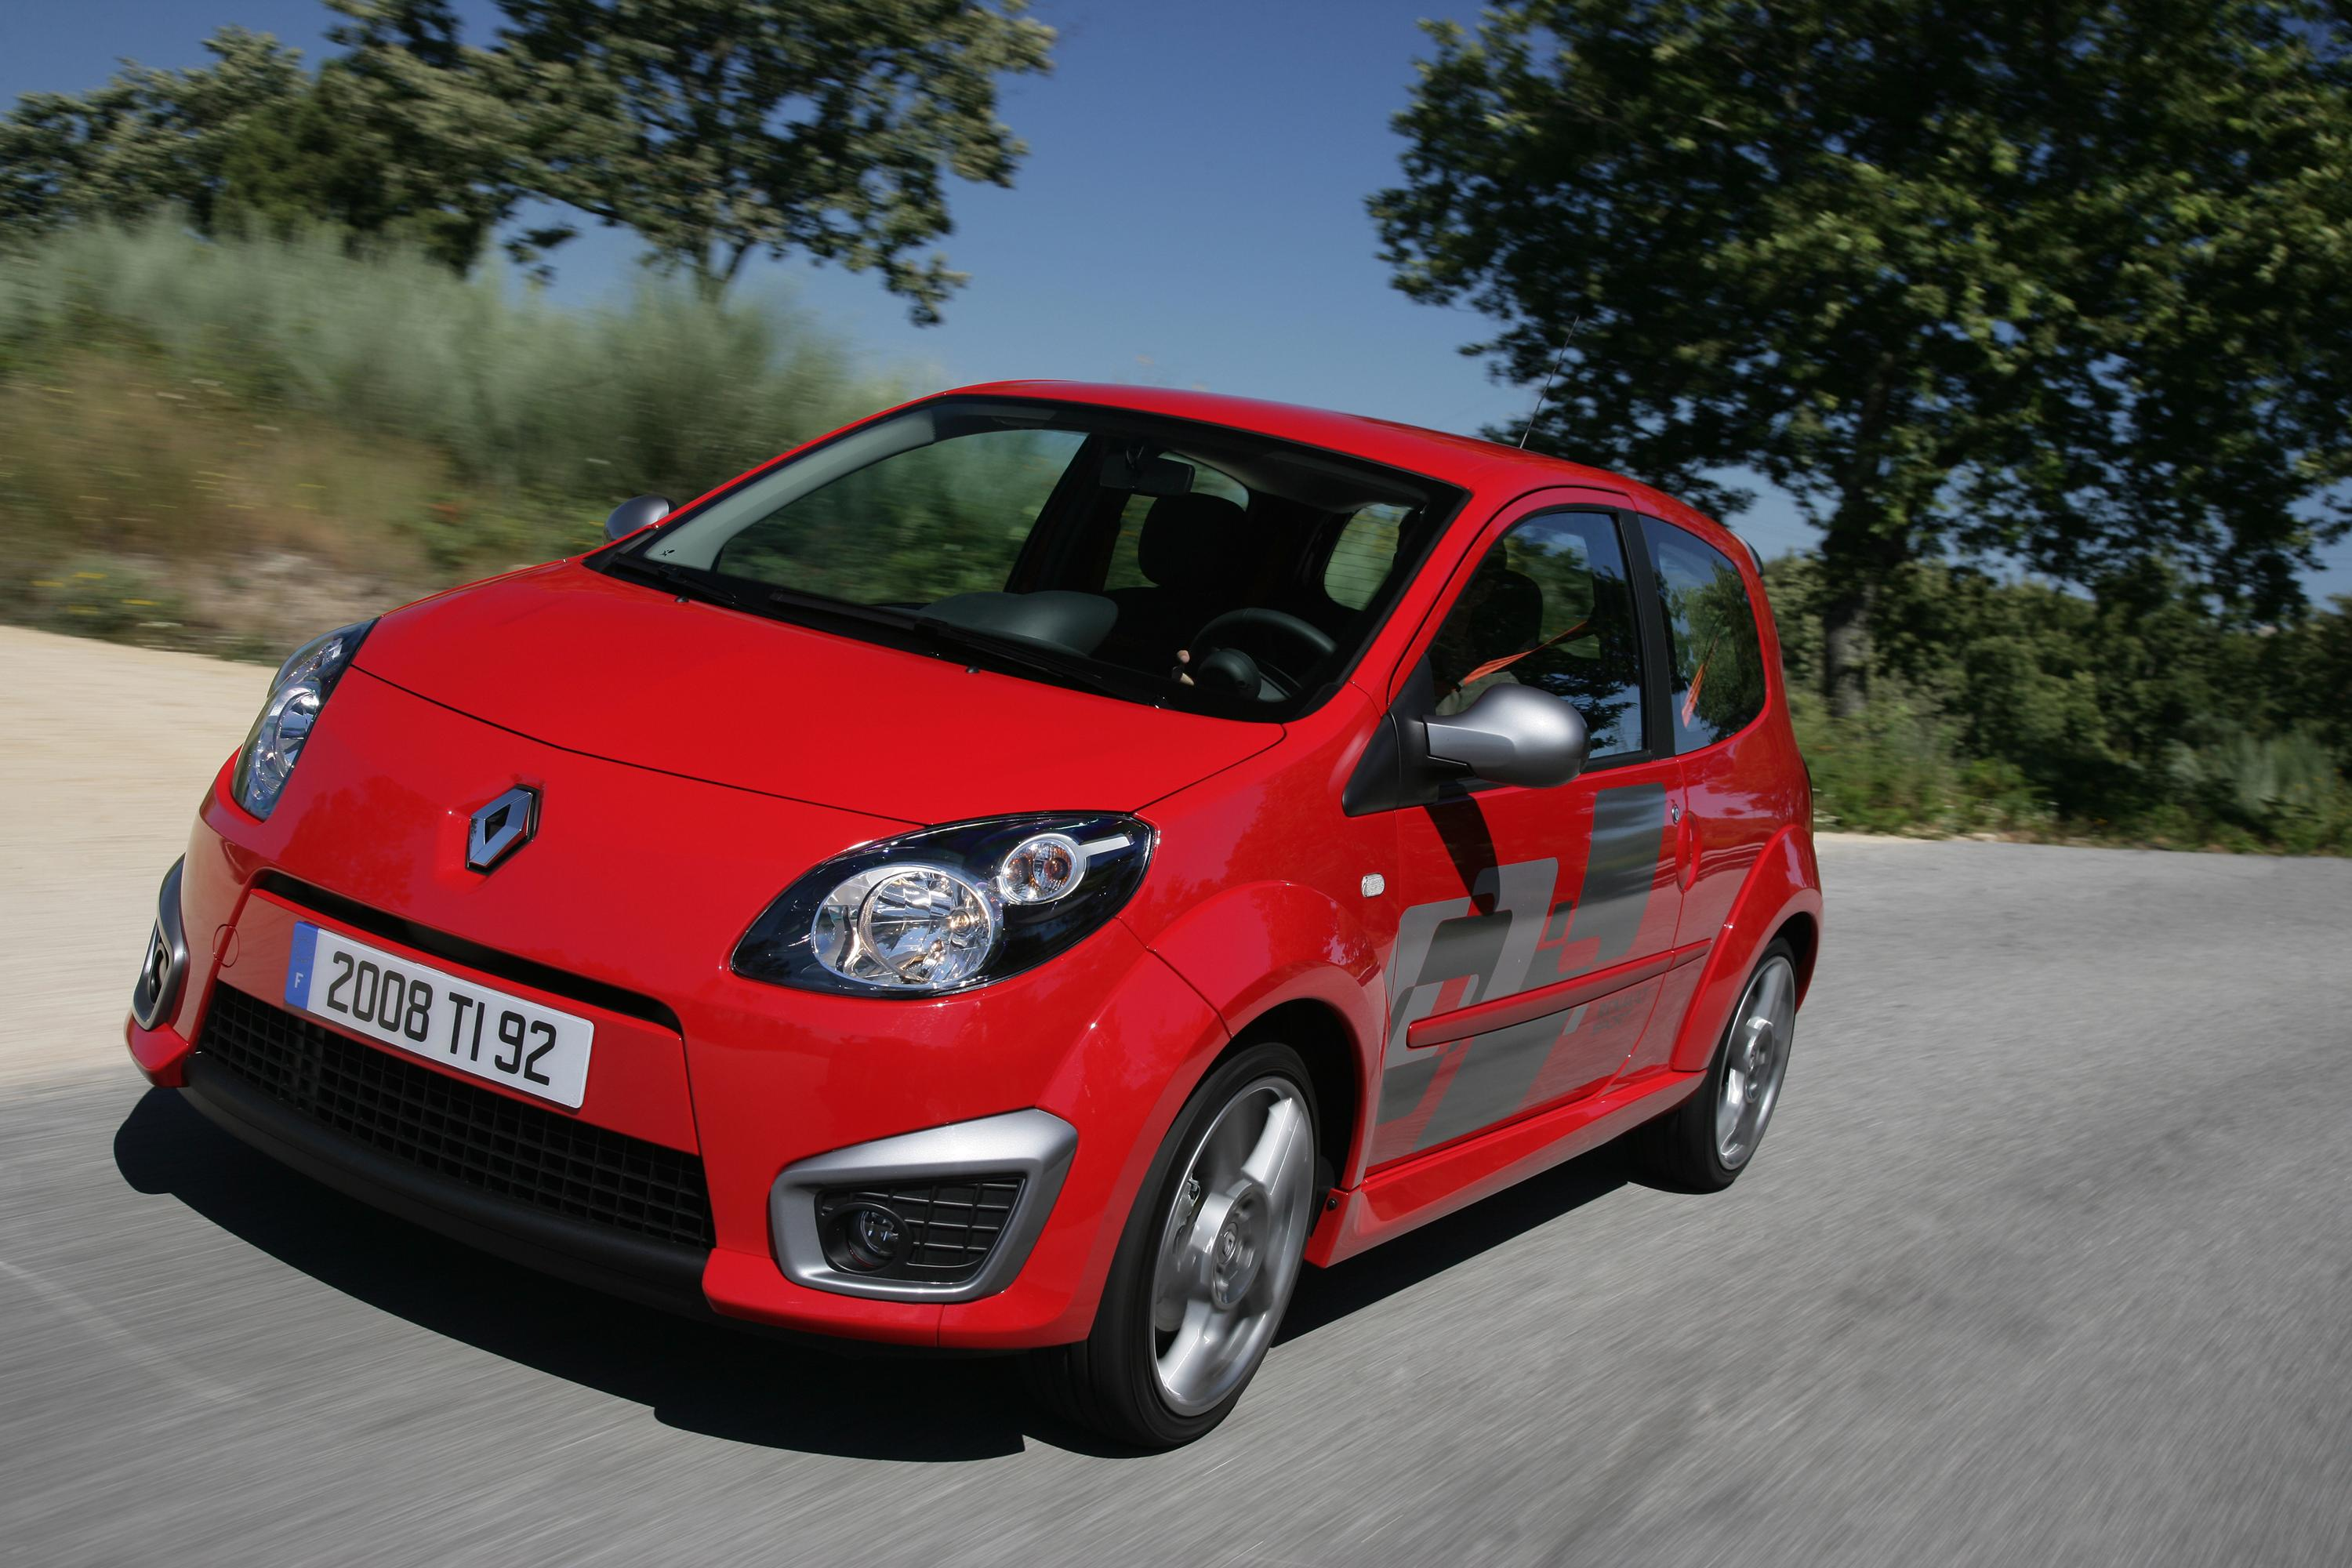 Renault Twingo RS - Picture 7999